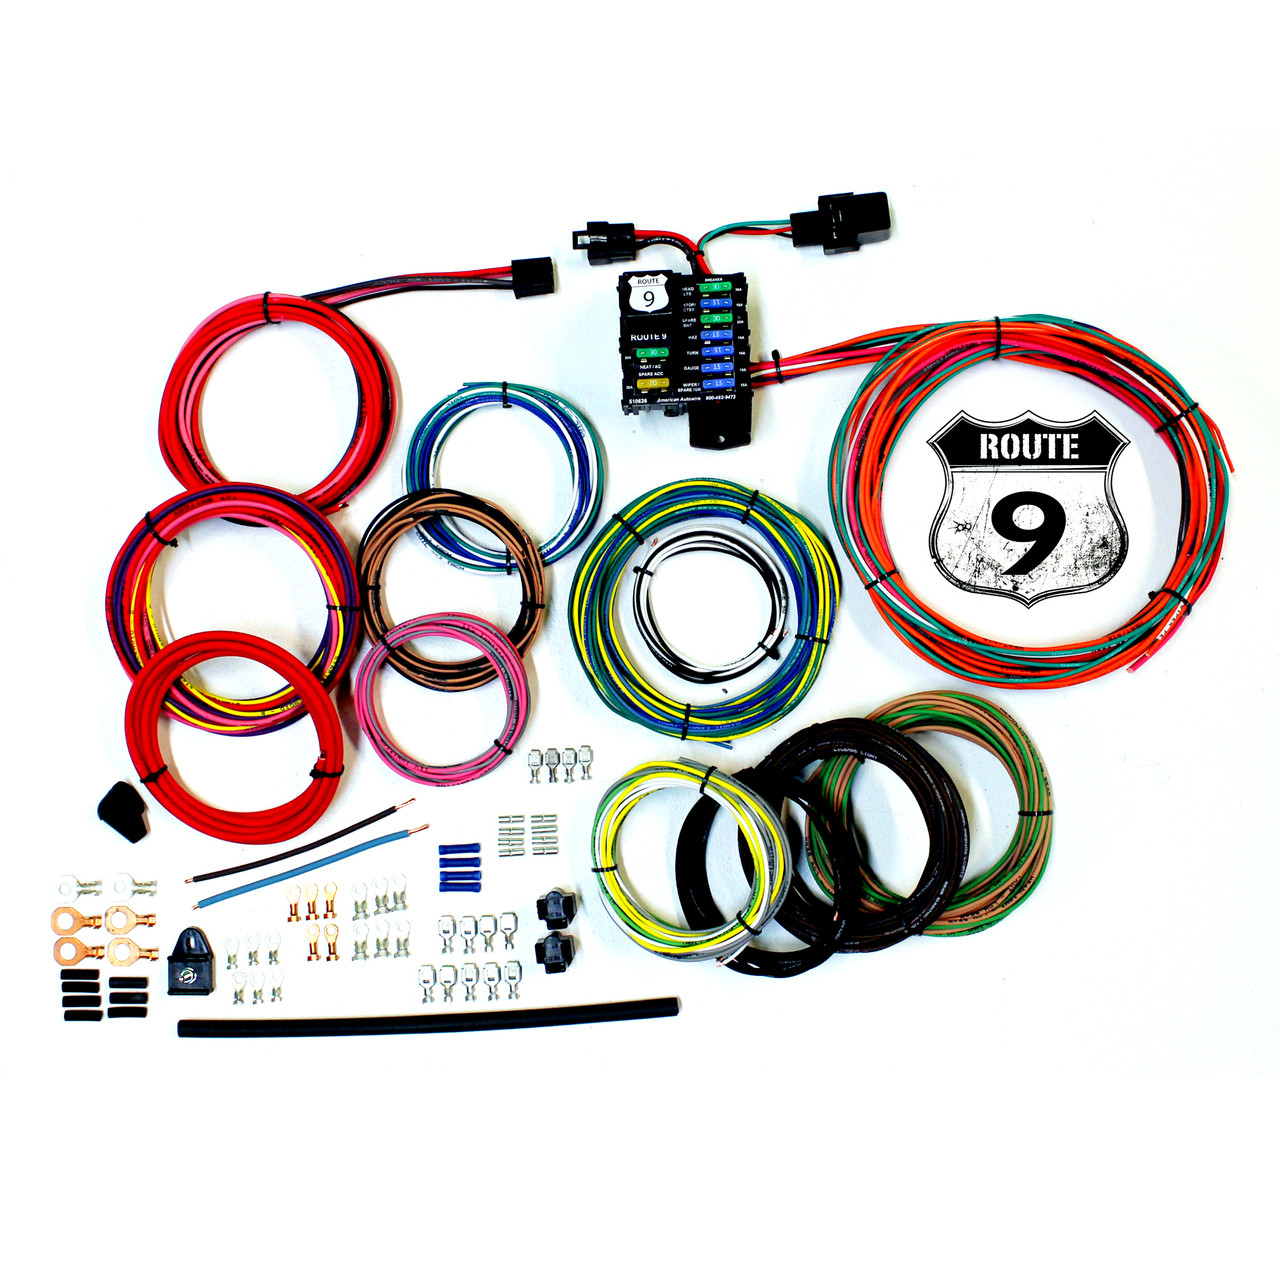 small resolution of american autowire route 9 universal wiring kit ame 510625